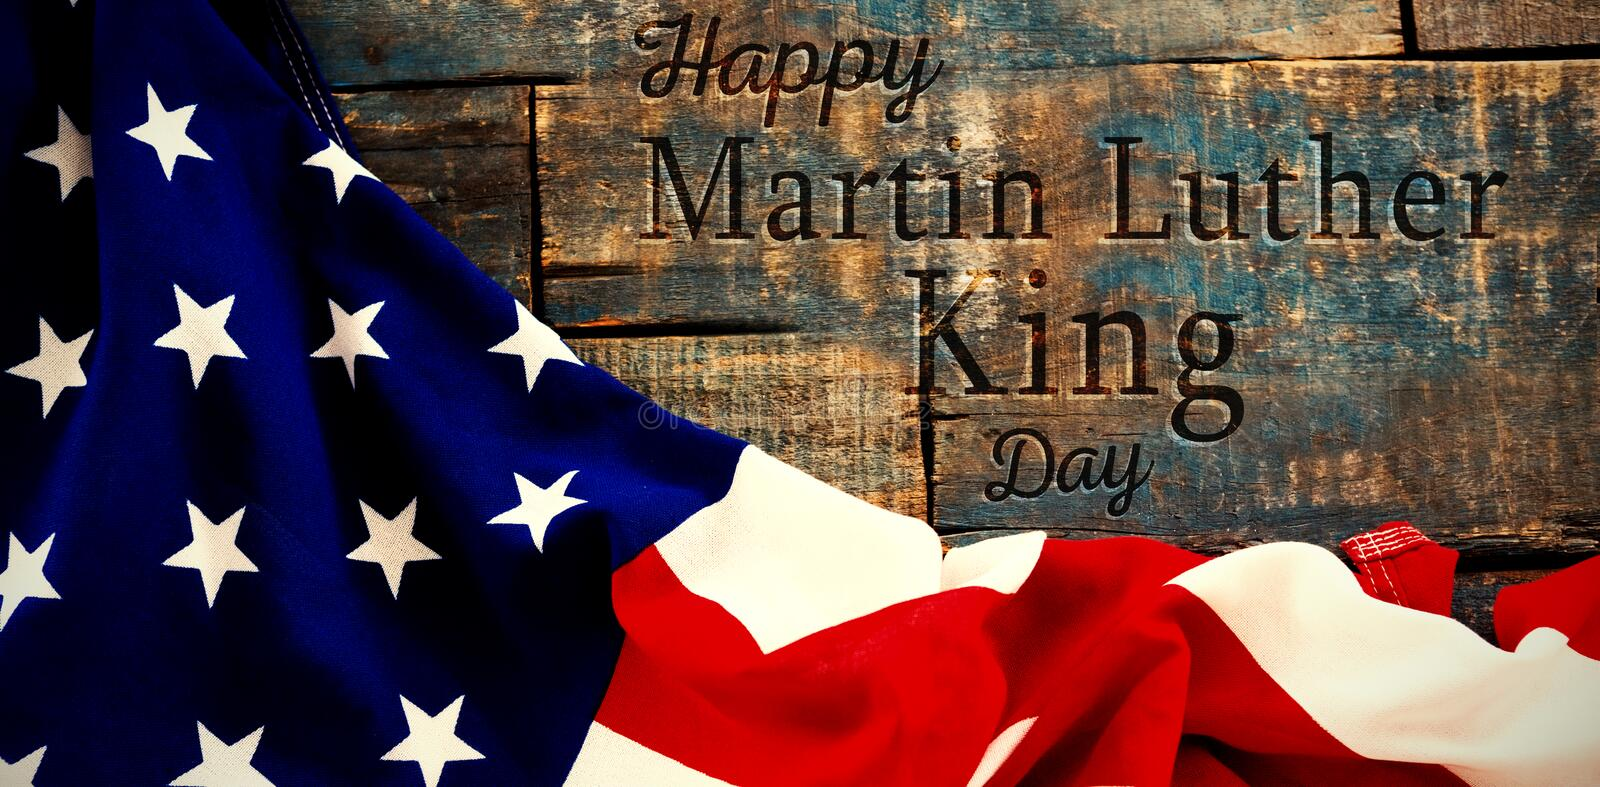 Imagem composta do dia feliz de Martin Luther King foto de stock royalty free